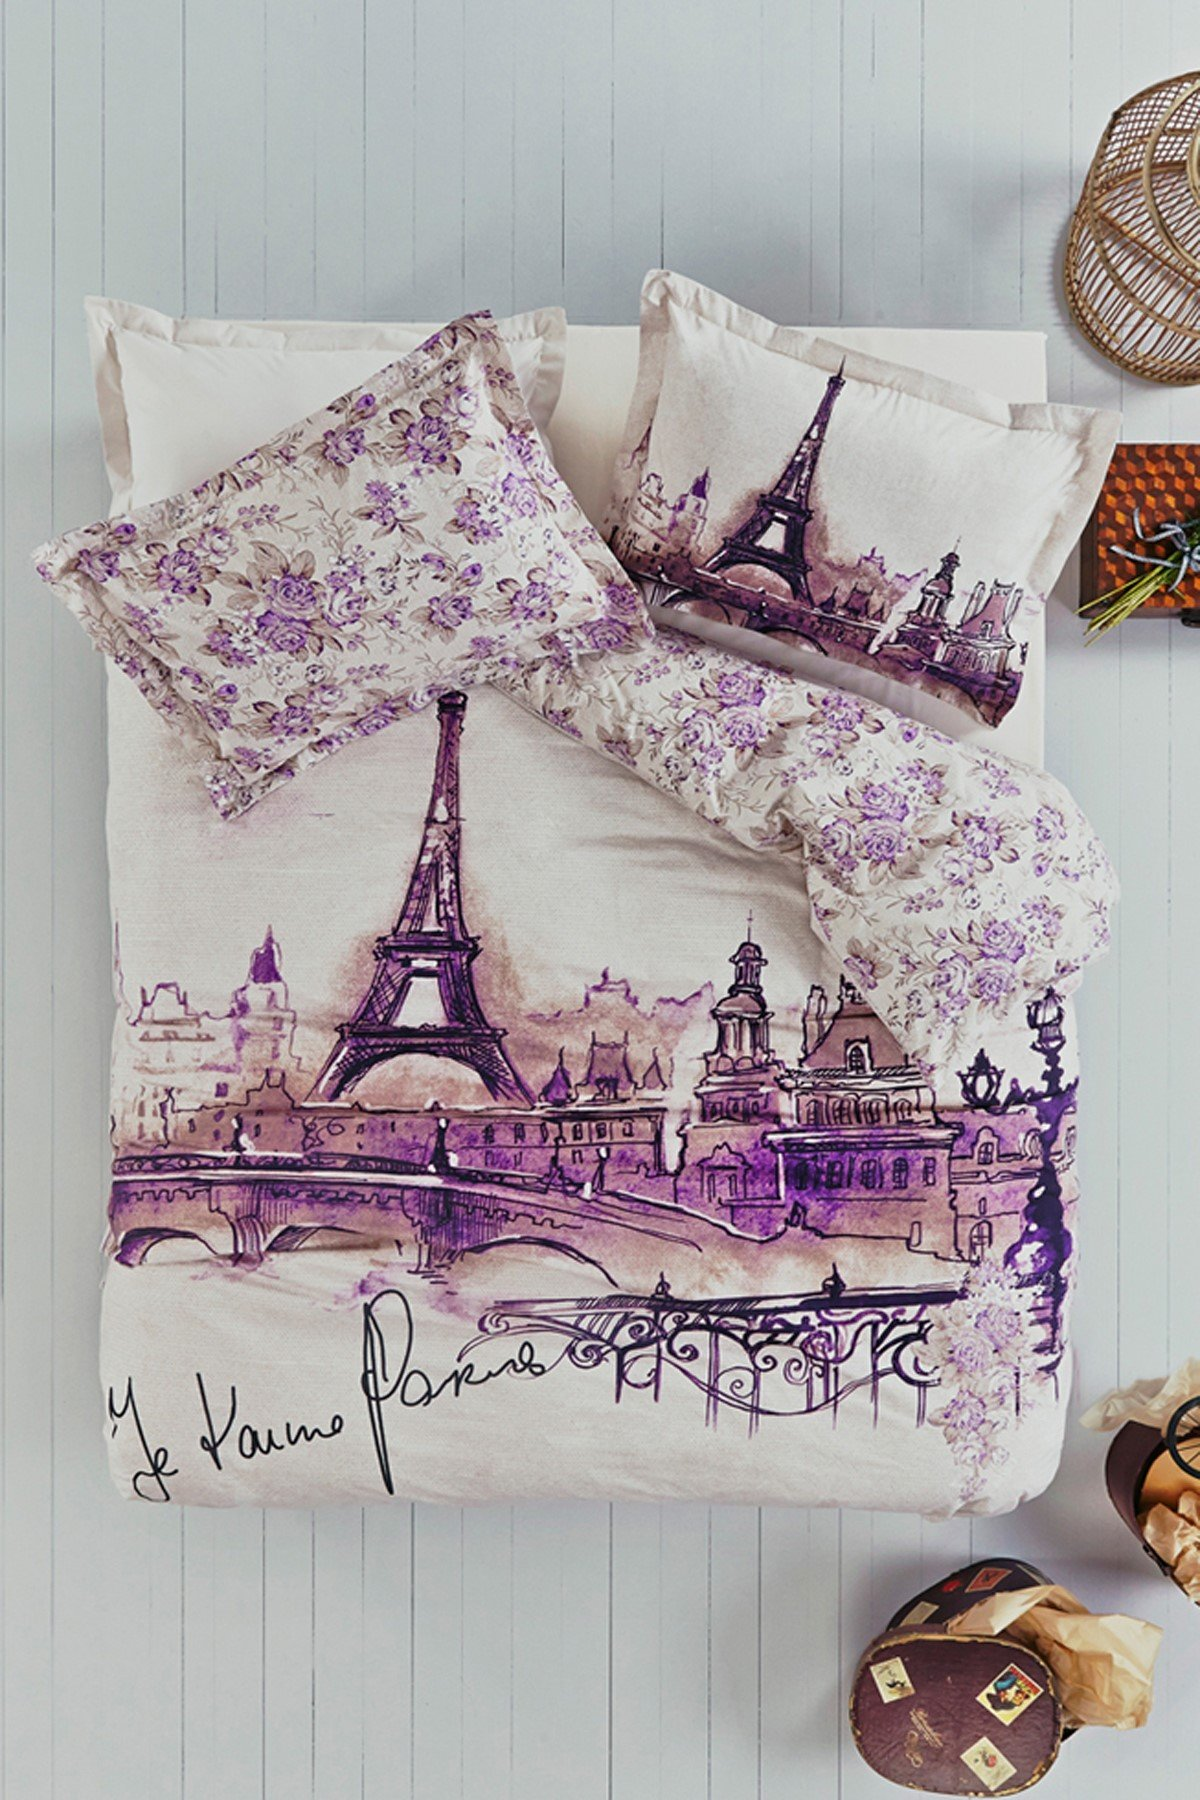 b208f99382415f Galleon - 100% Turkish Cotton Ranforce Paris Eiffel Tower Theme Themed  Amour Floral Full Double Queen Size Quilt Duvet Cover Set Bedding 4 Pcs!!  Made In ...